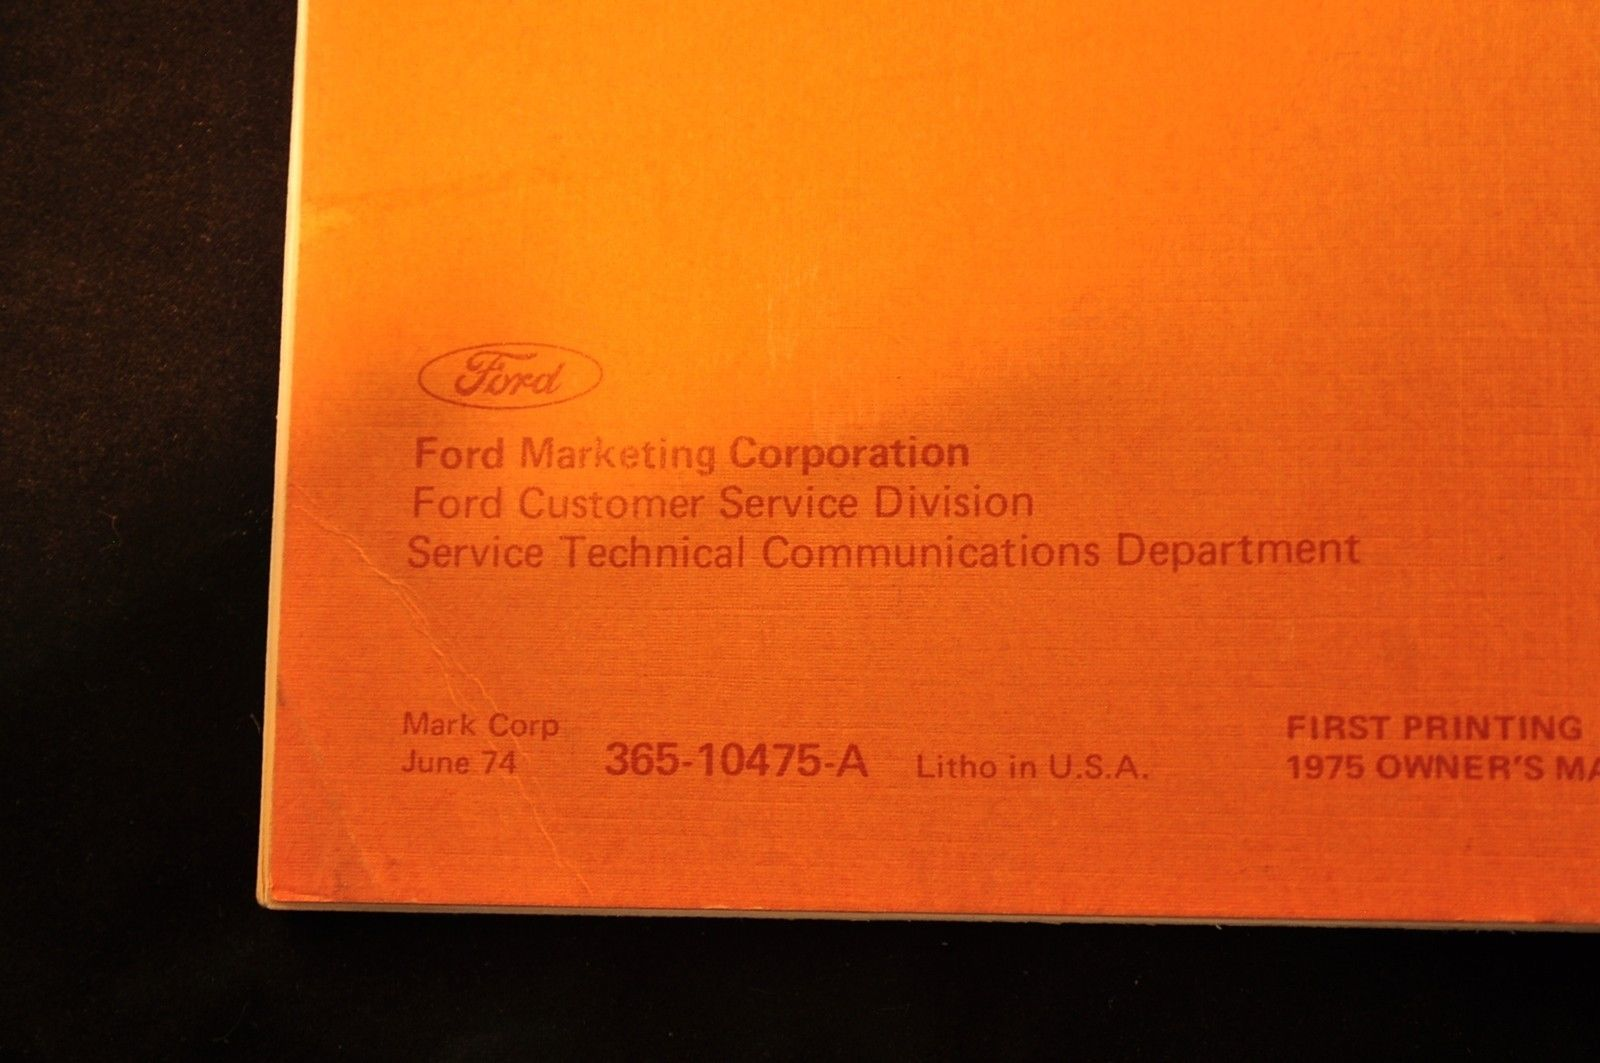 Vintage 1975 Ford Torino Owners Manual VGC